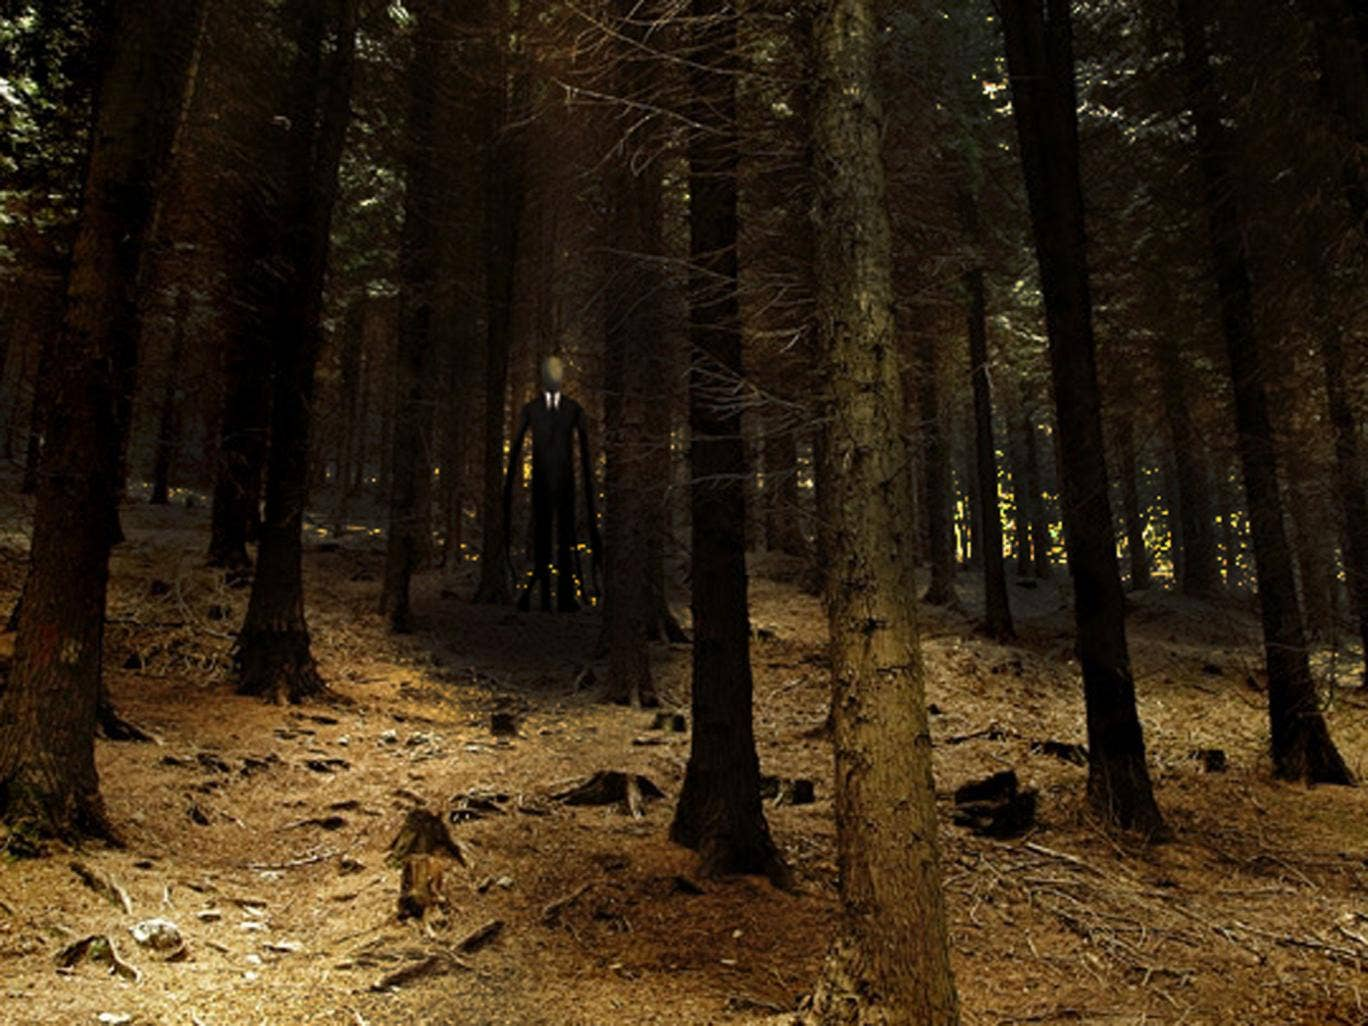 Slender man 911 call released today